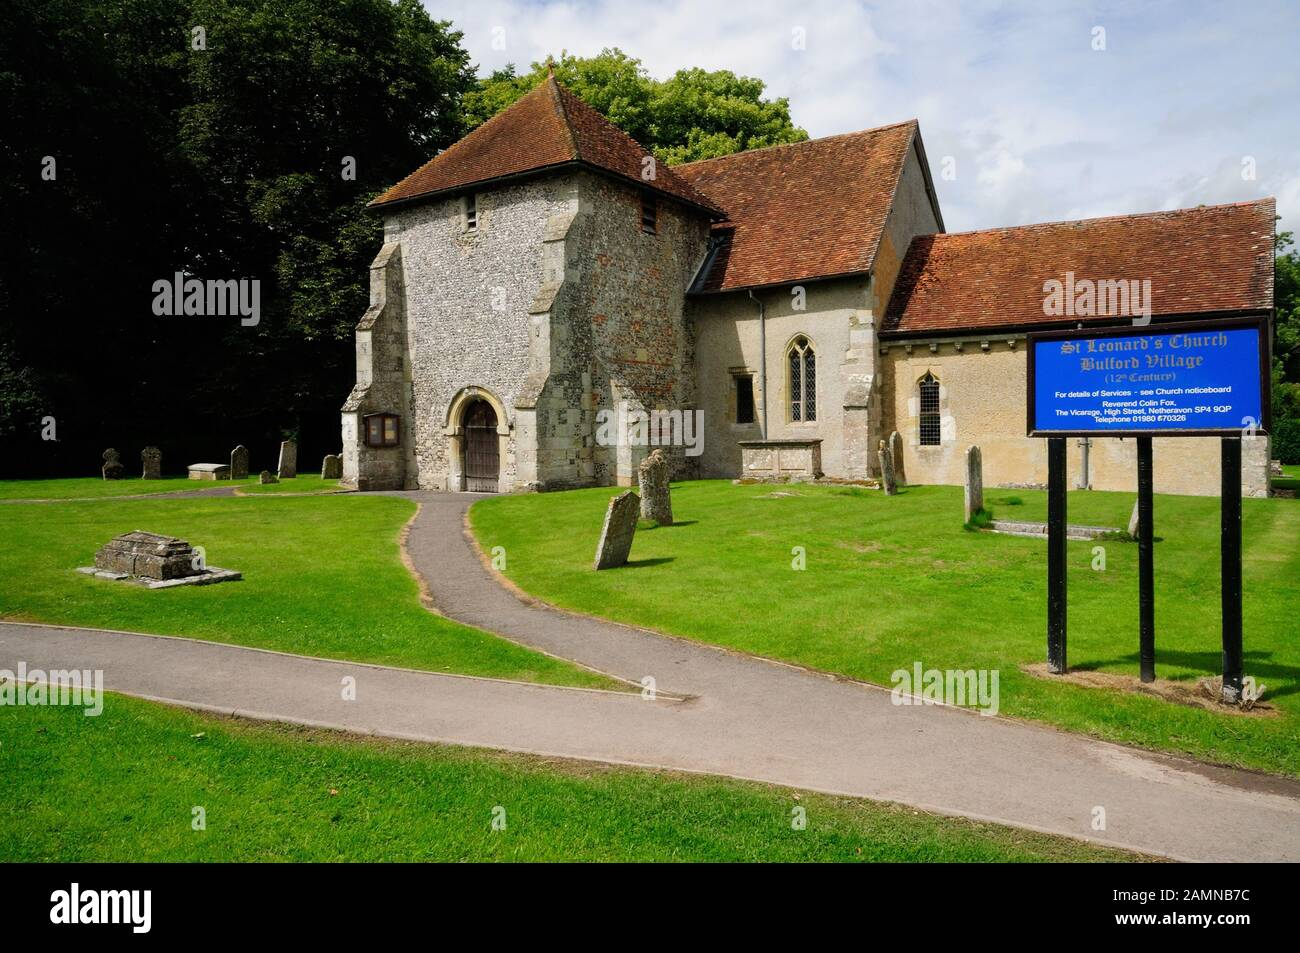 St Leonard's church, Bulford, Wiltshire. Stock Photo